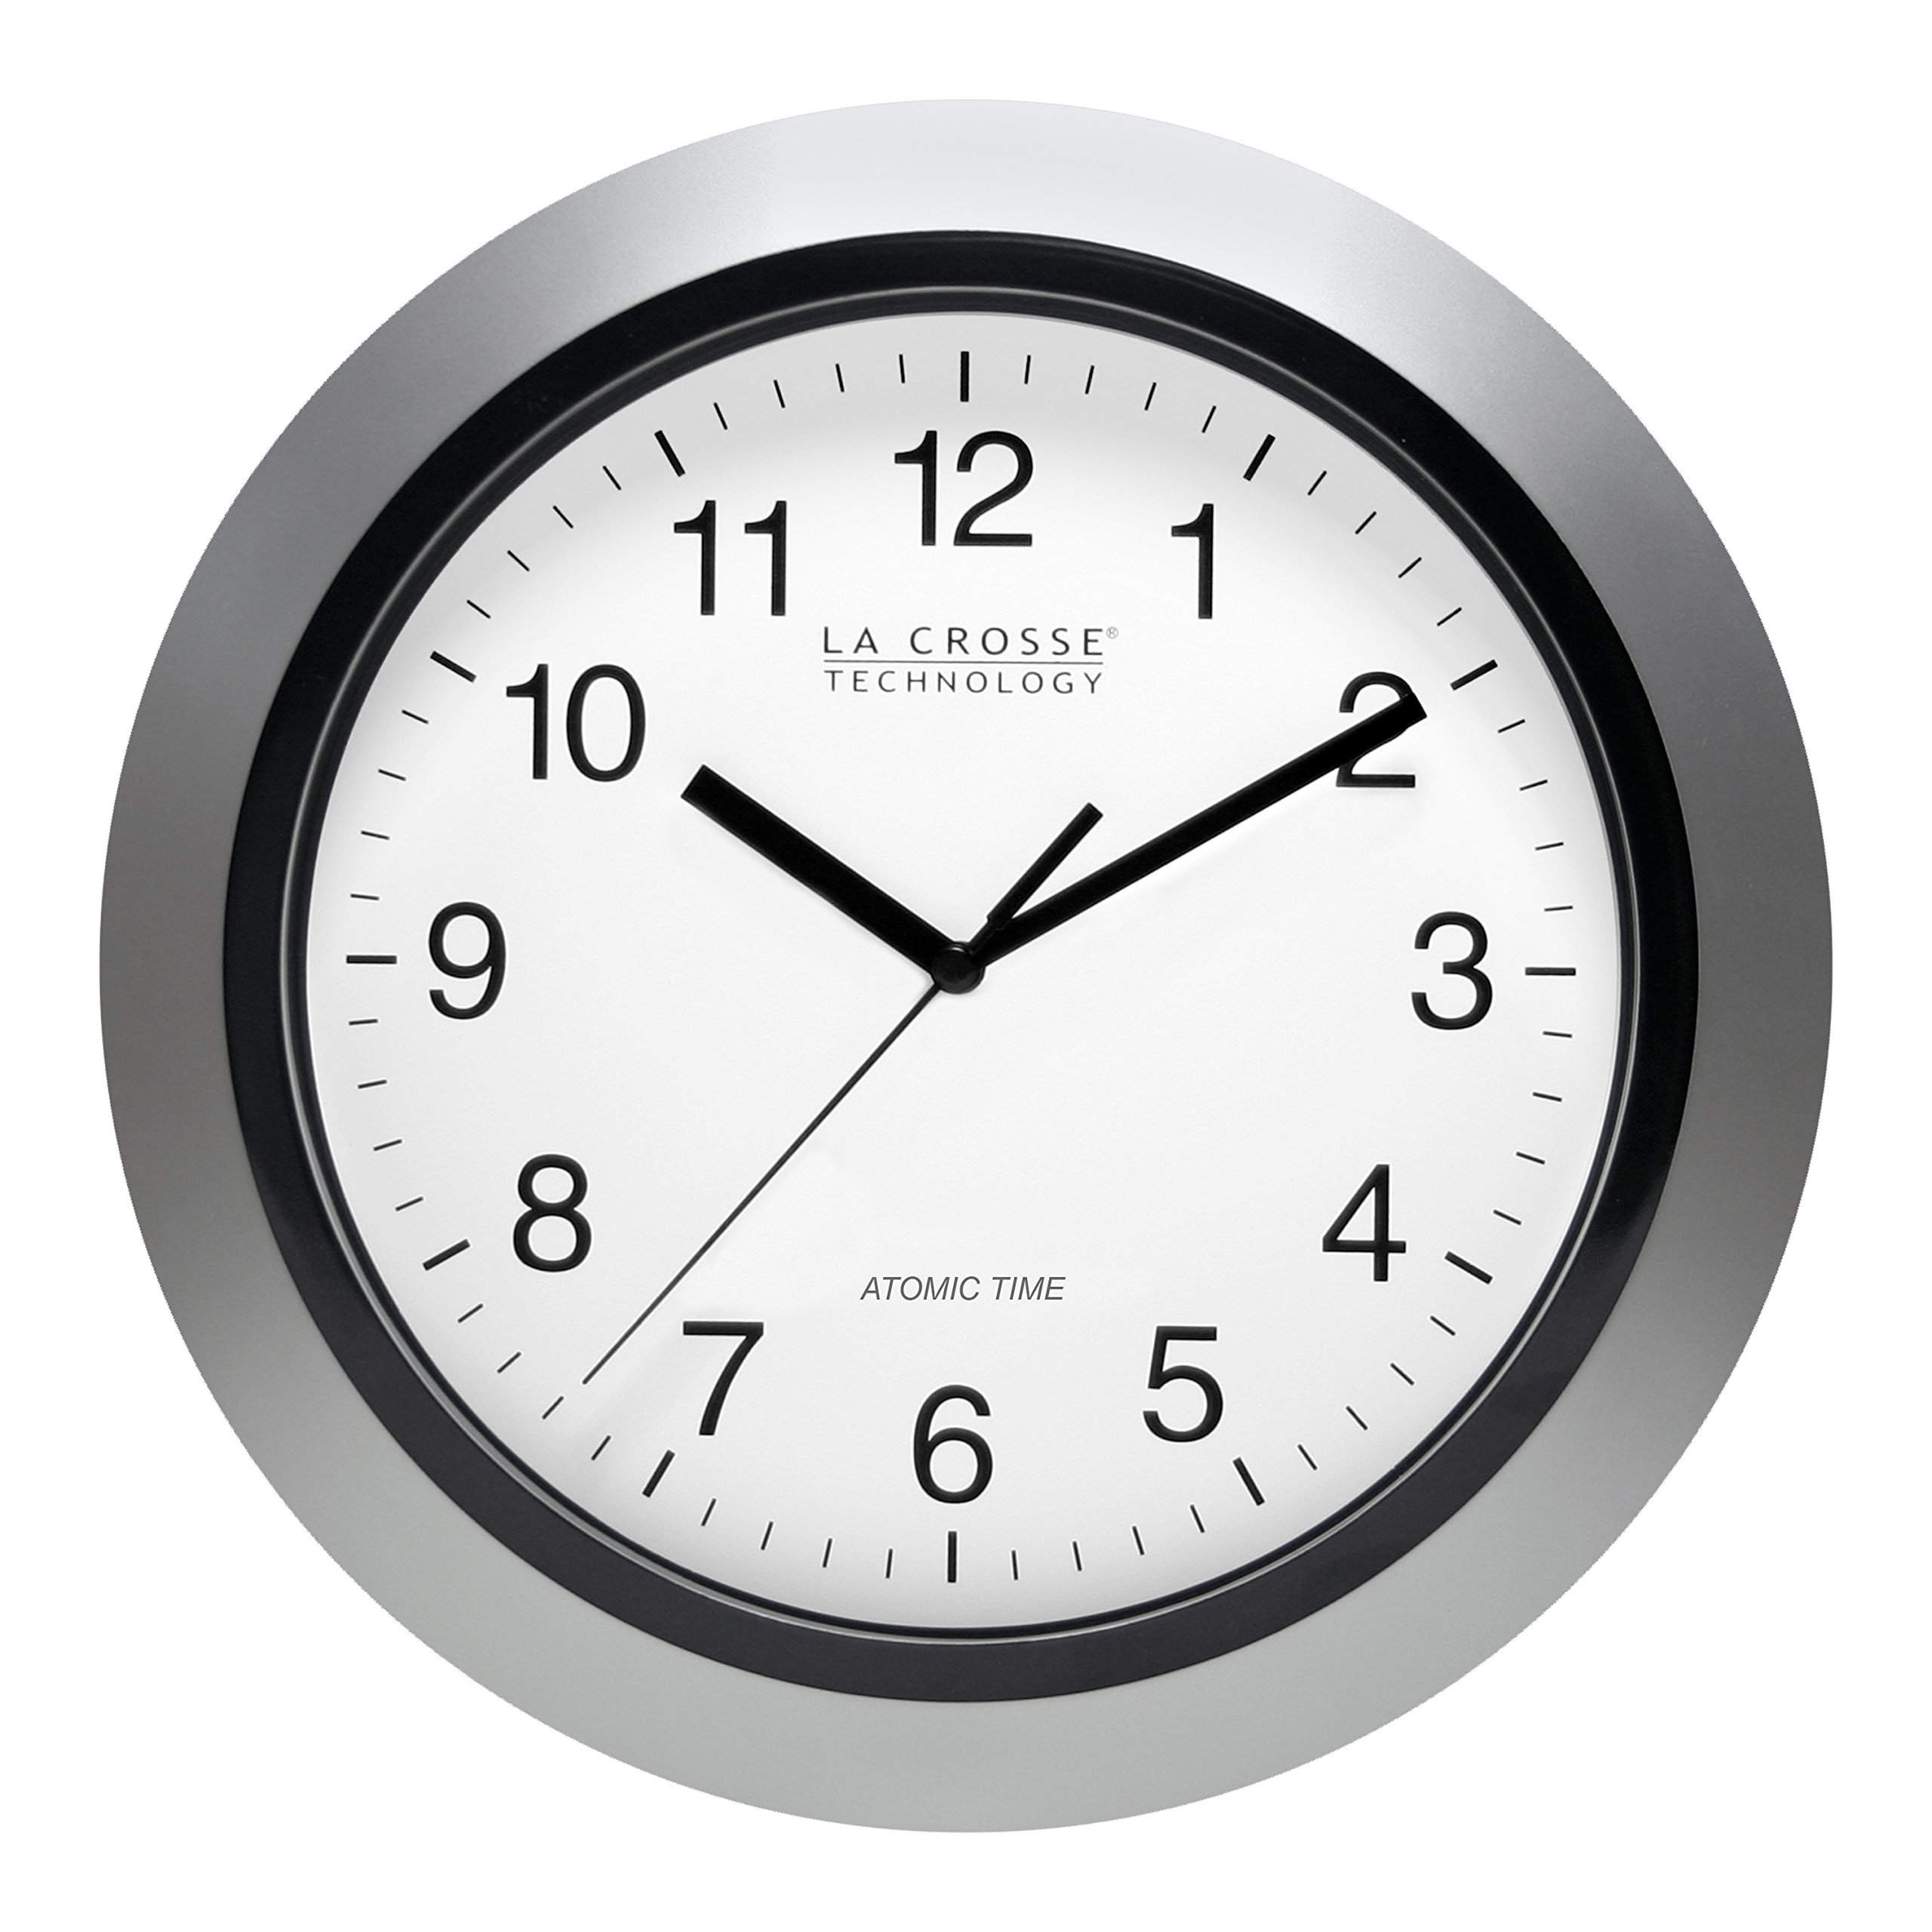 La Crosse Technology WT-3102S 10 Inch Silver Atomic Analog Wall Clock